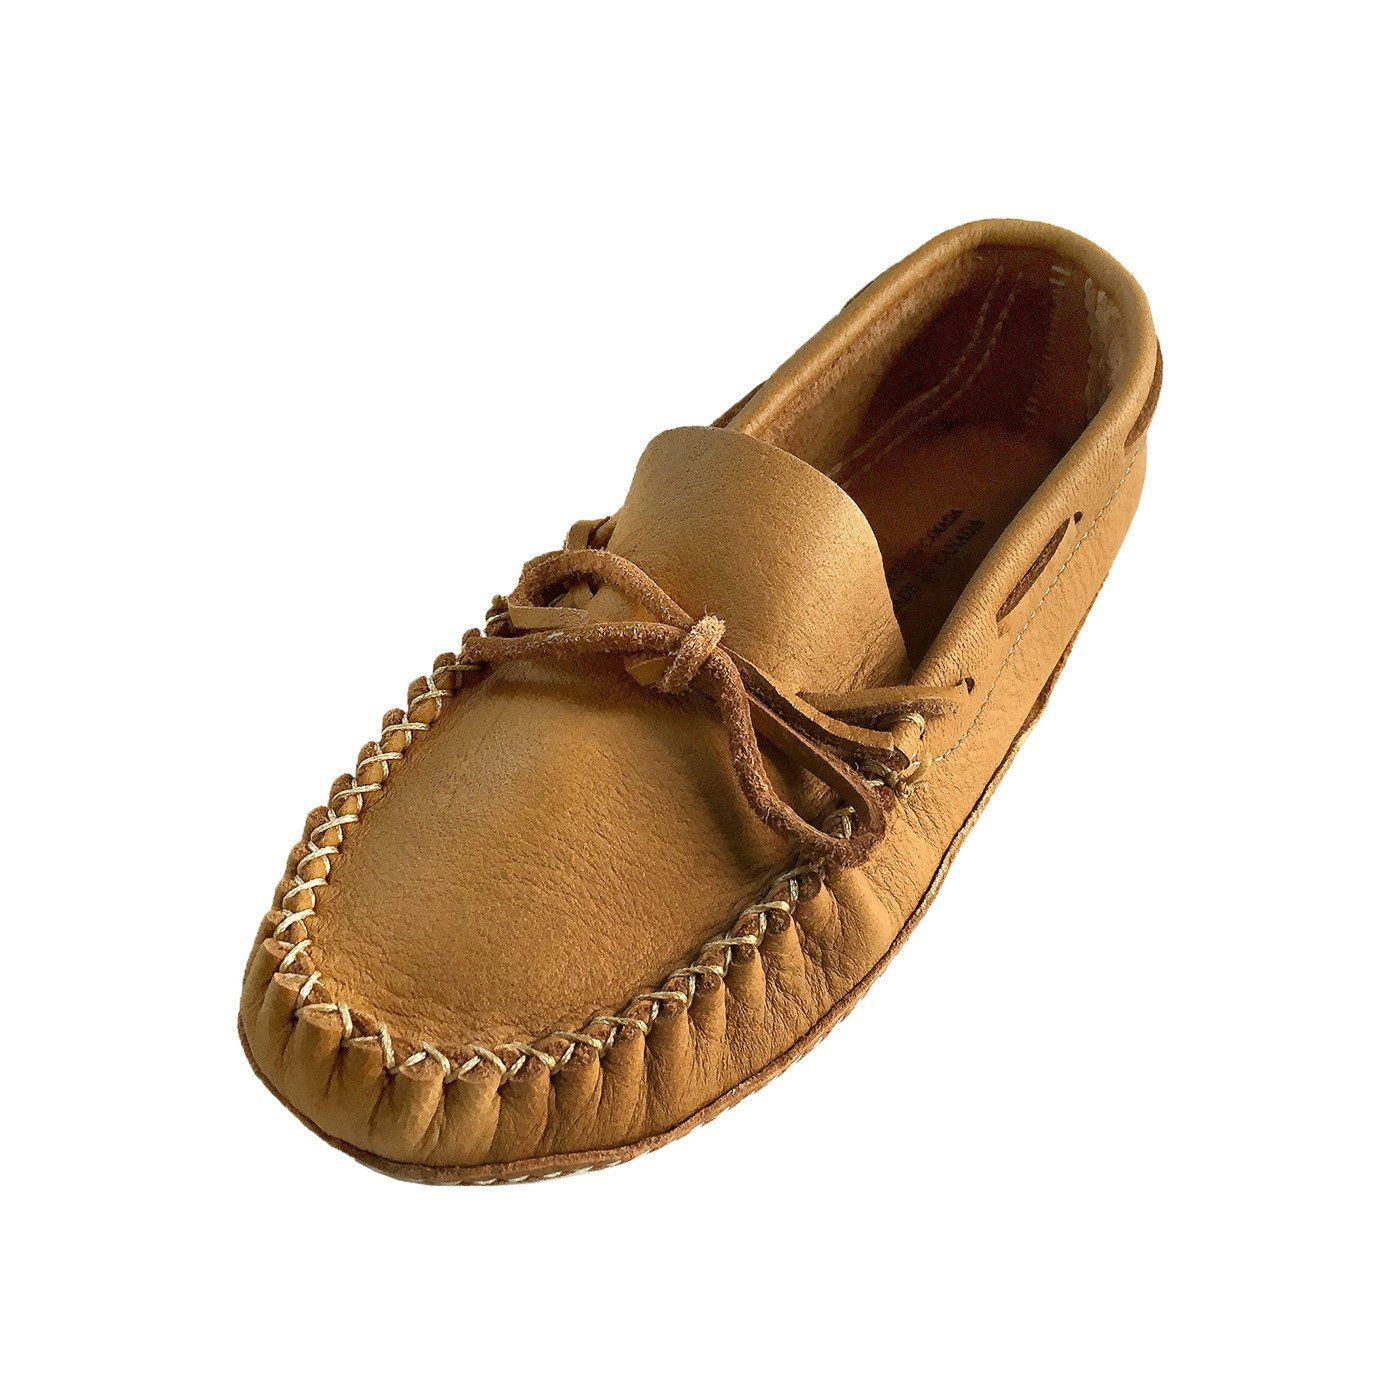 Women's Soft Sole Wide OR Medium Width Leather Moccasins